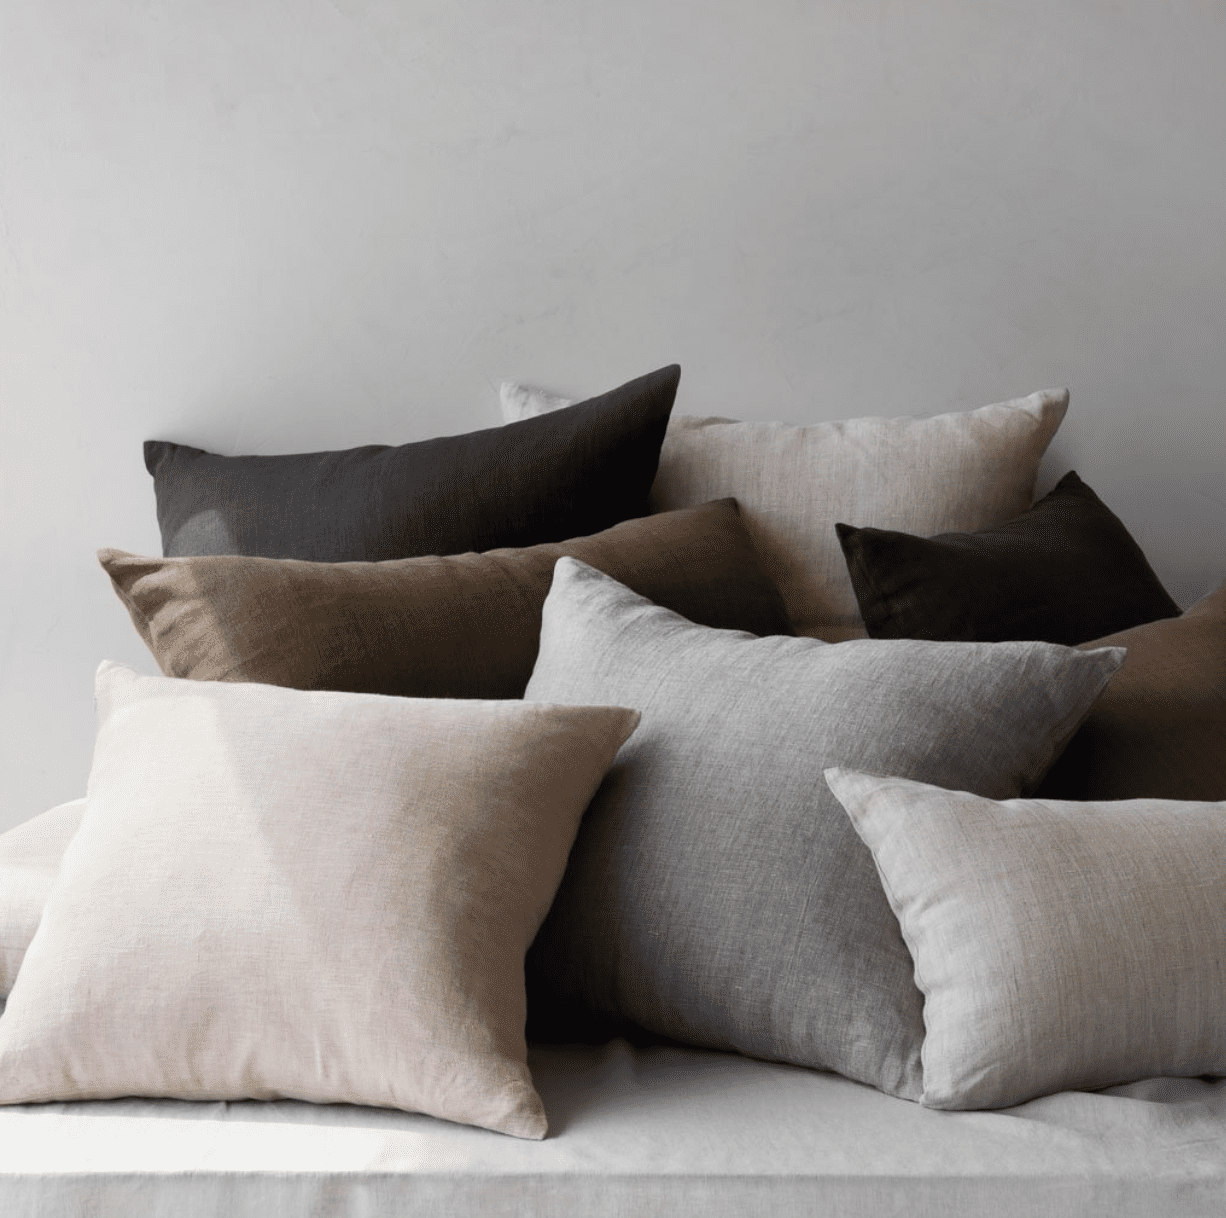 linen pillows in multiple earthy shades including olive, gray, and blush pink